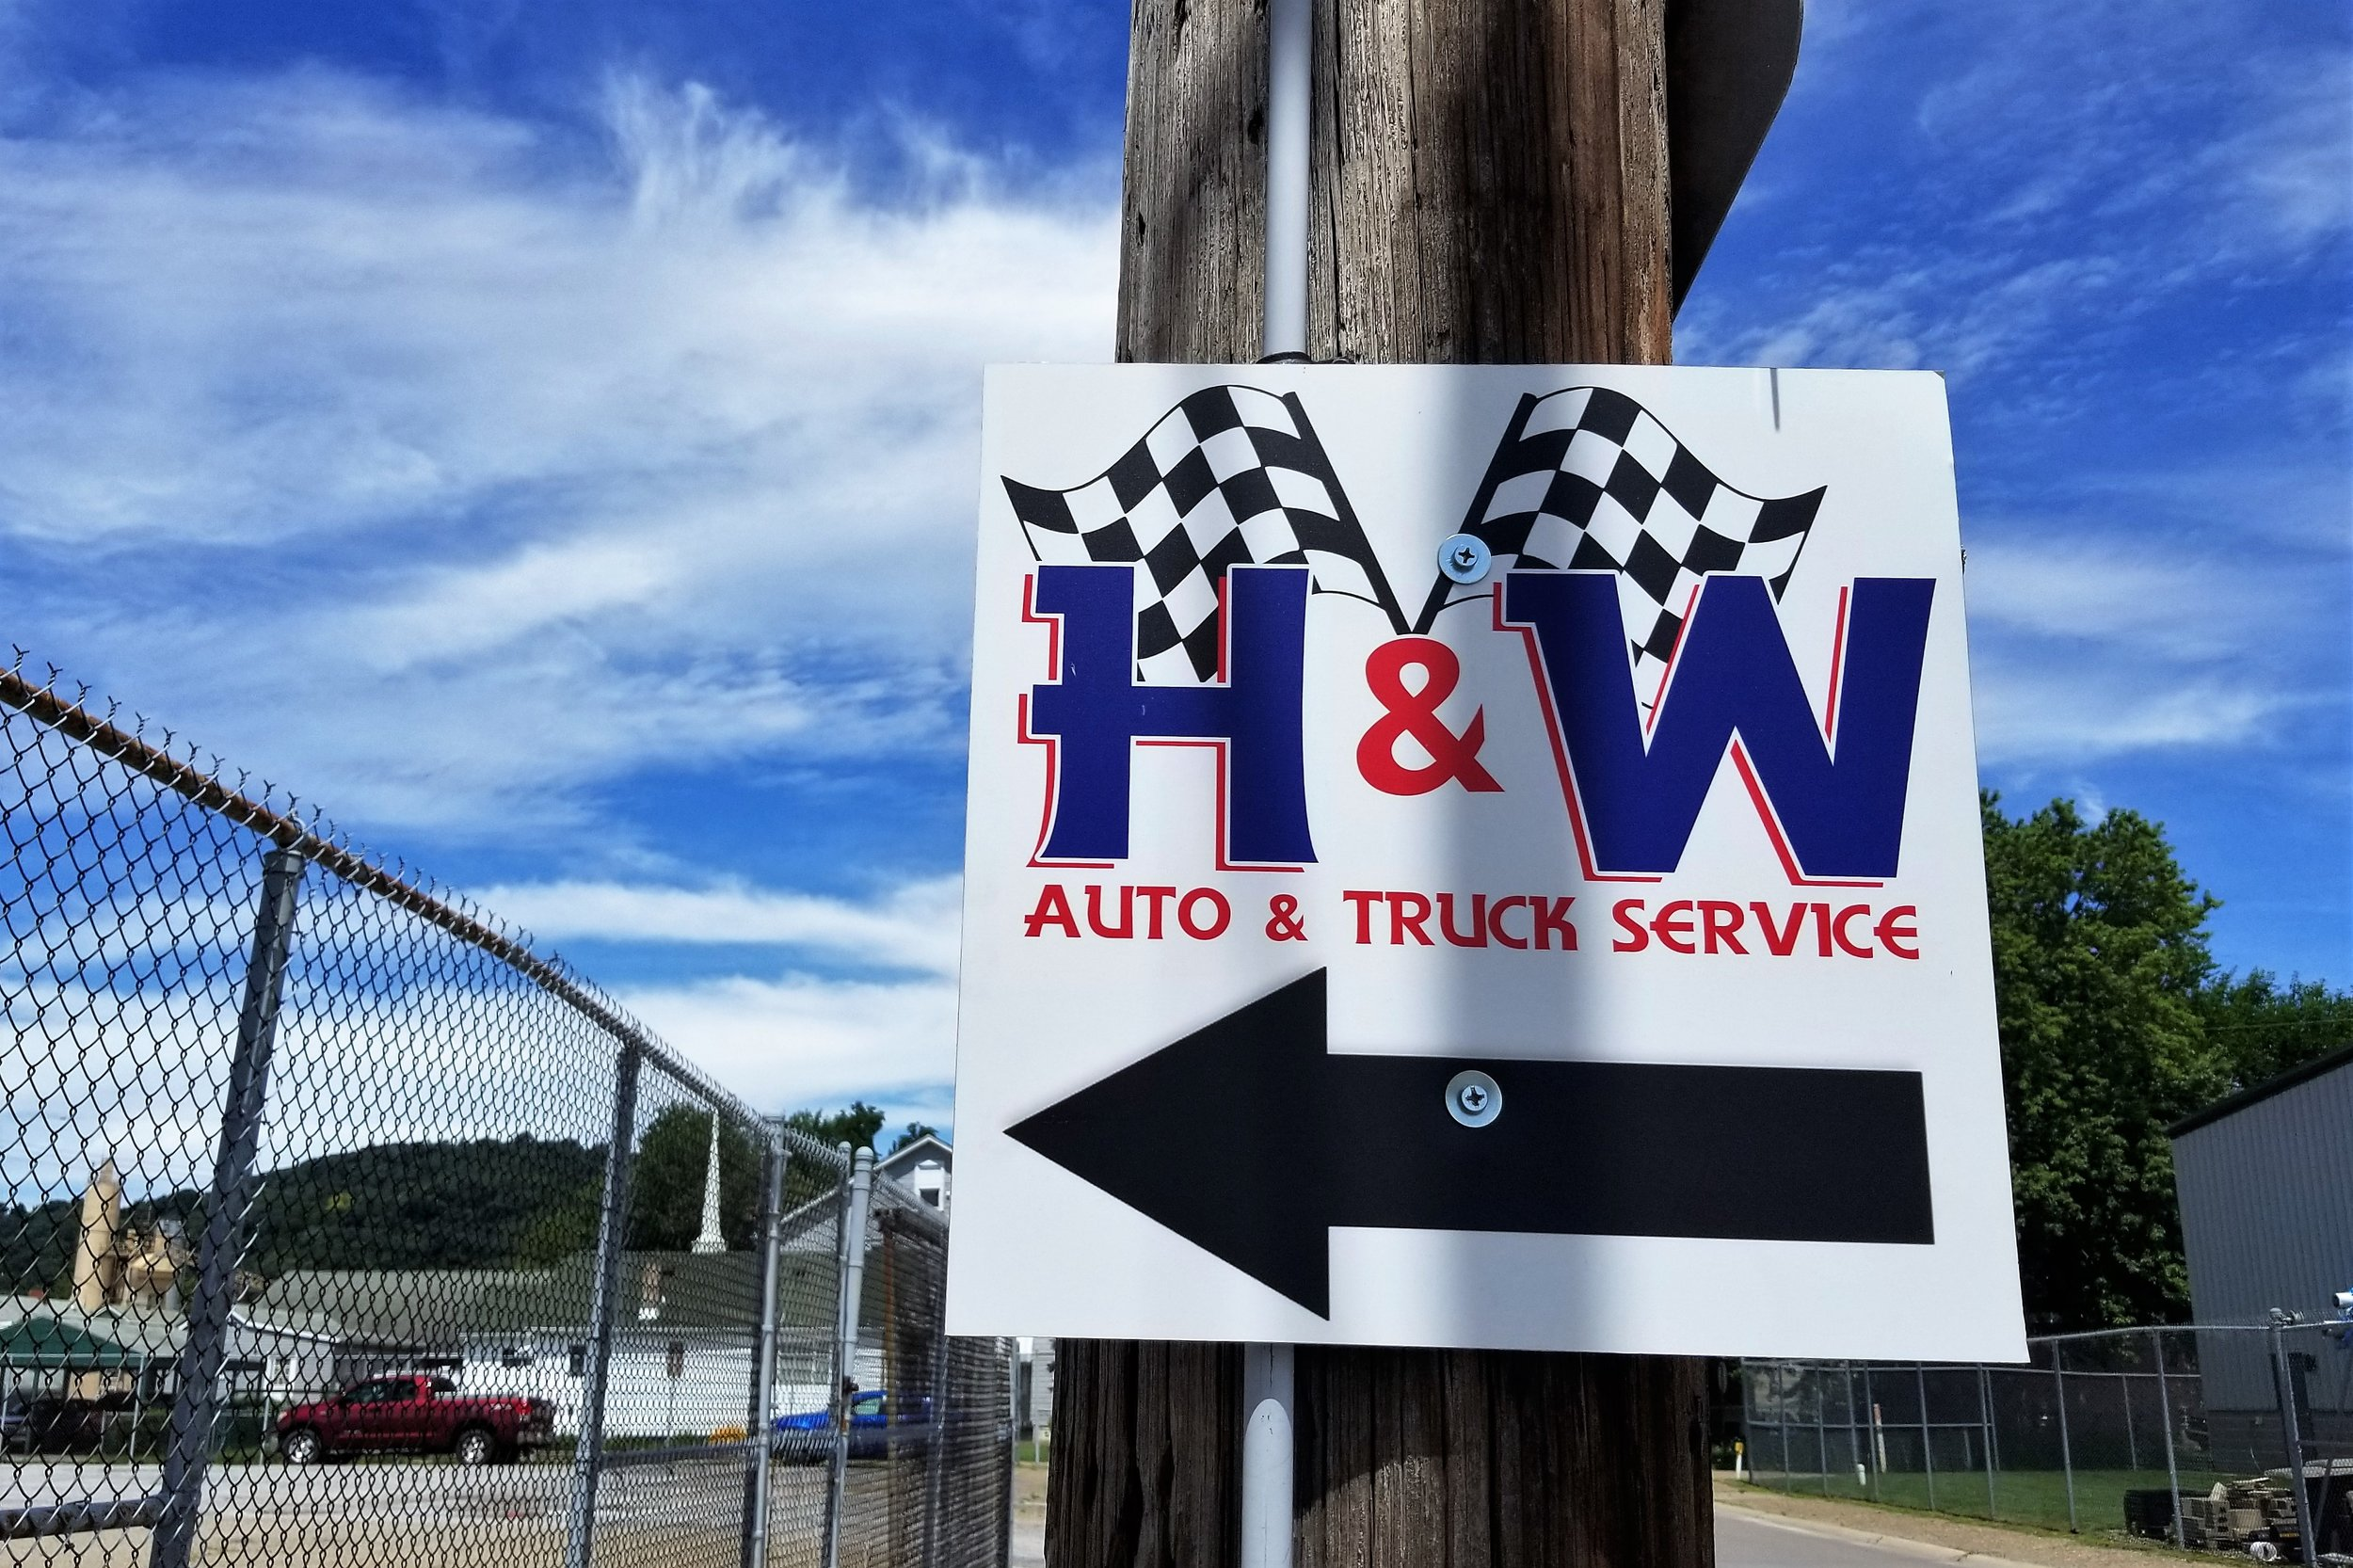 H&W Auto & Truck Service - 200 Kendall St, (412) 375-7554